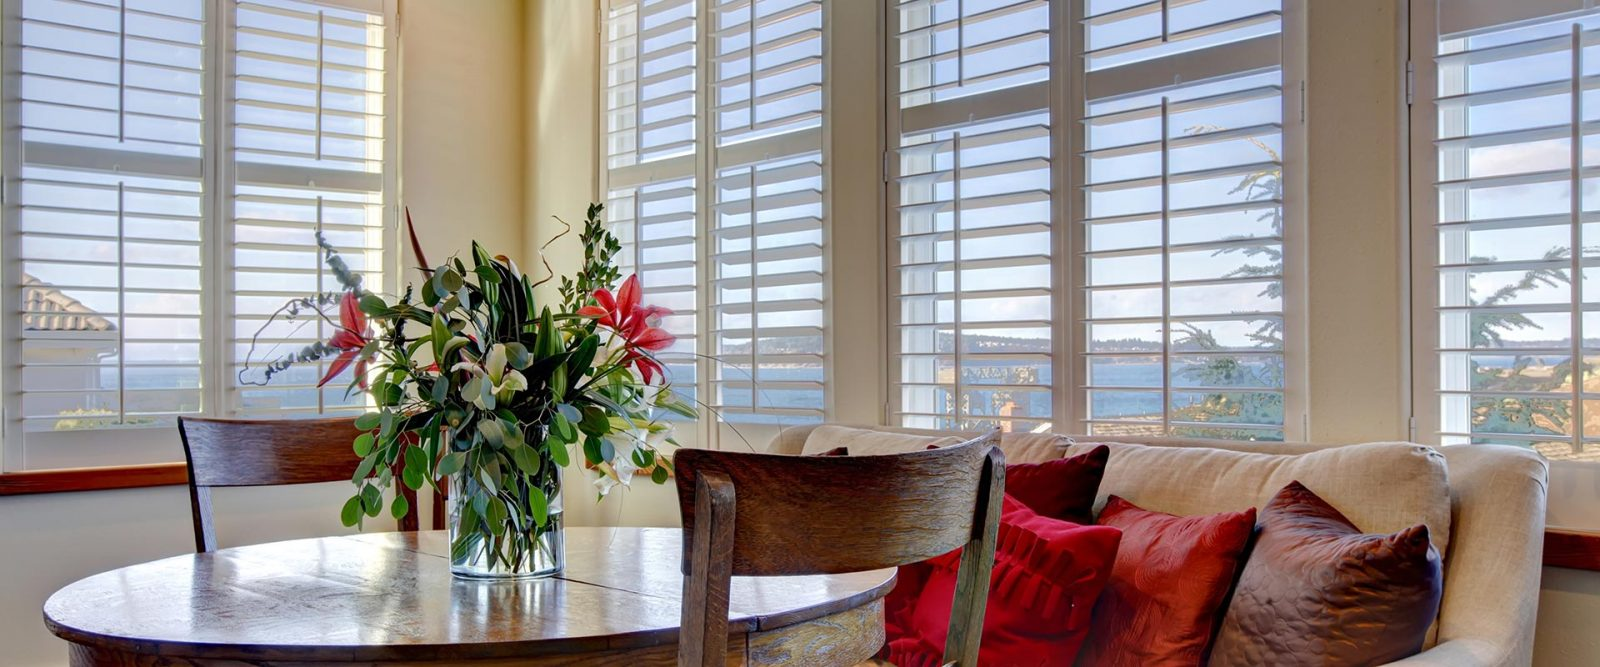 Custom Shutters - Tampa - St. Petersburg